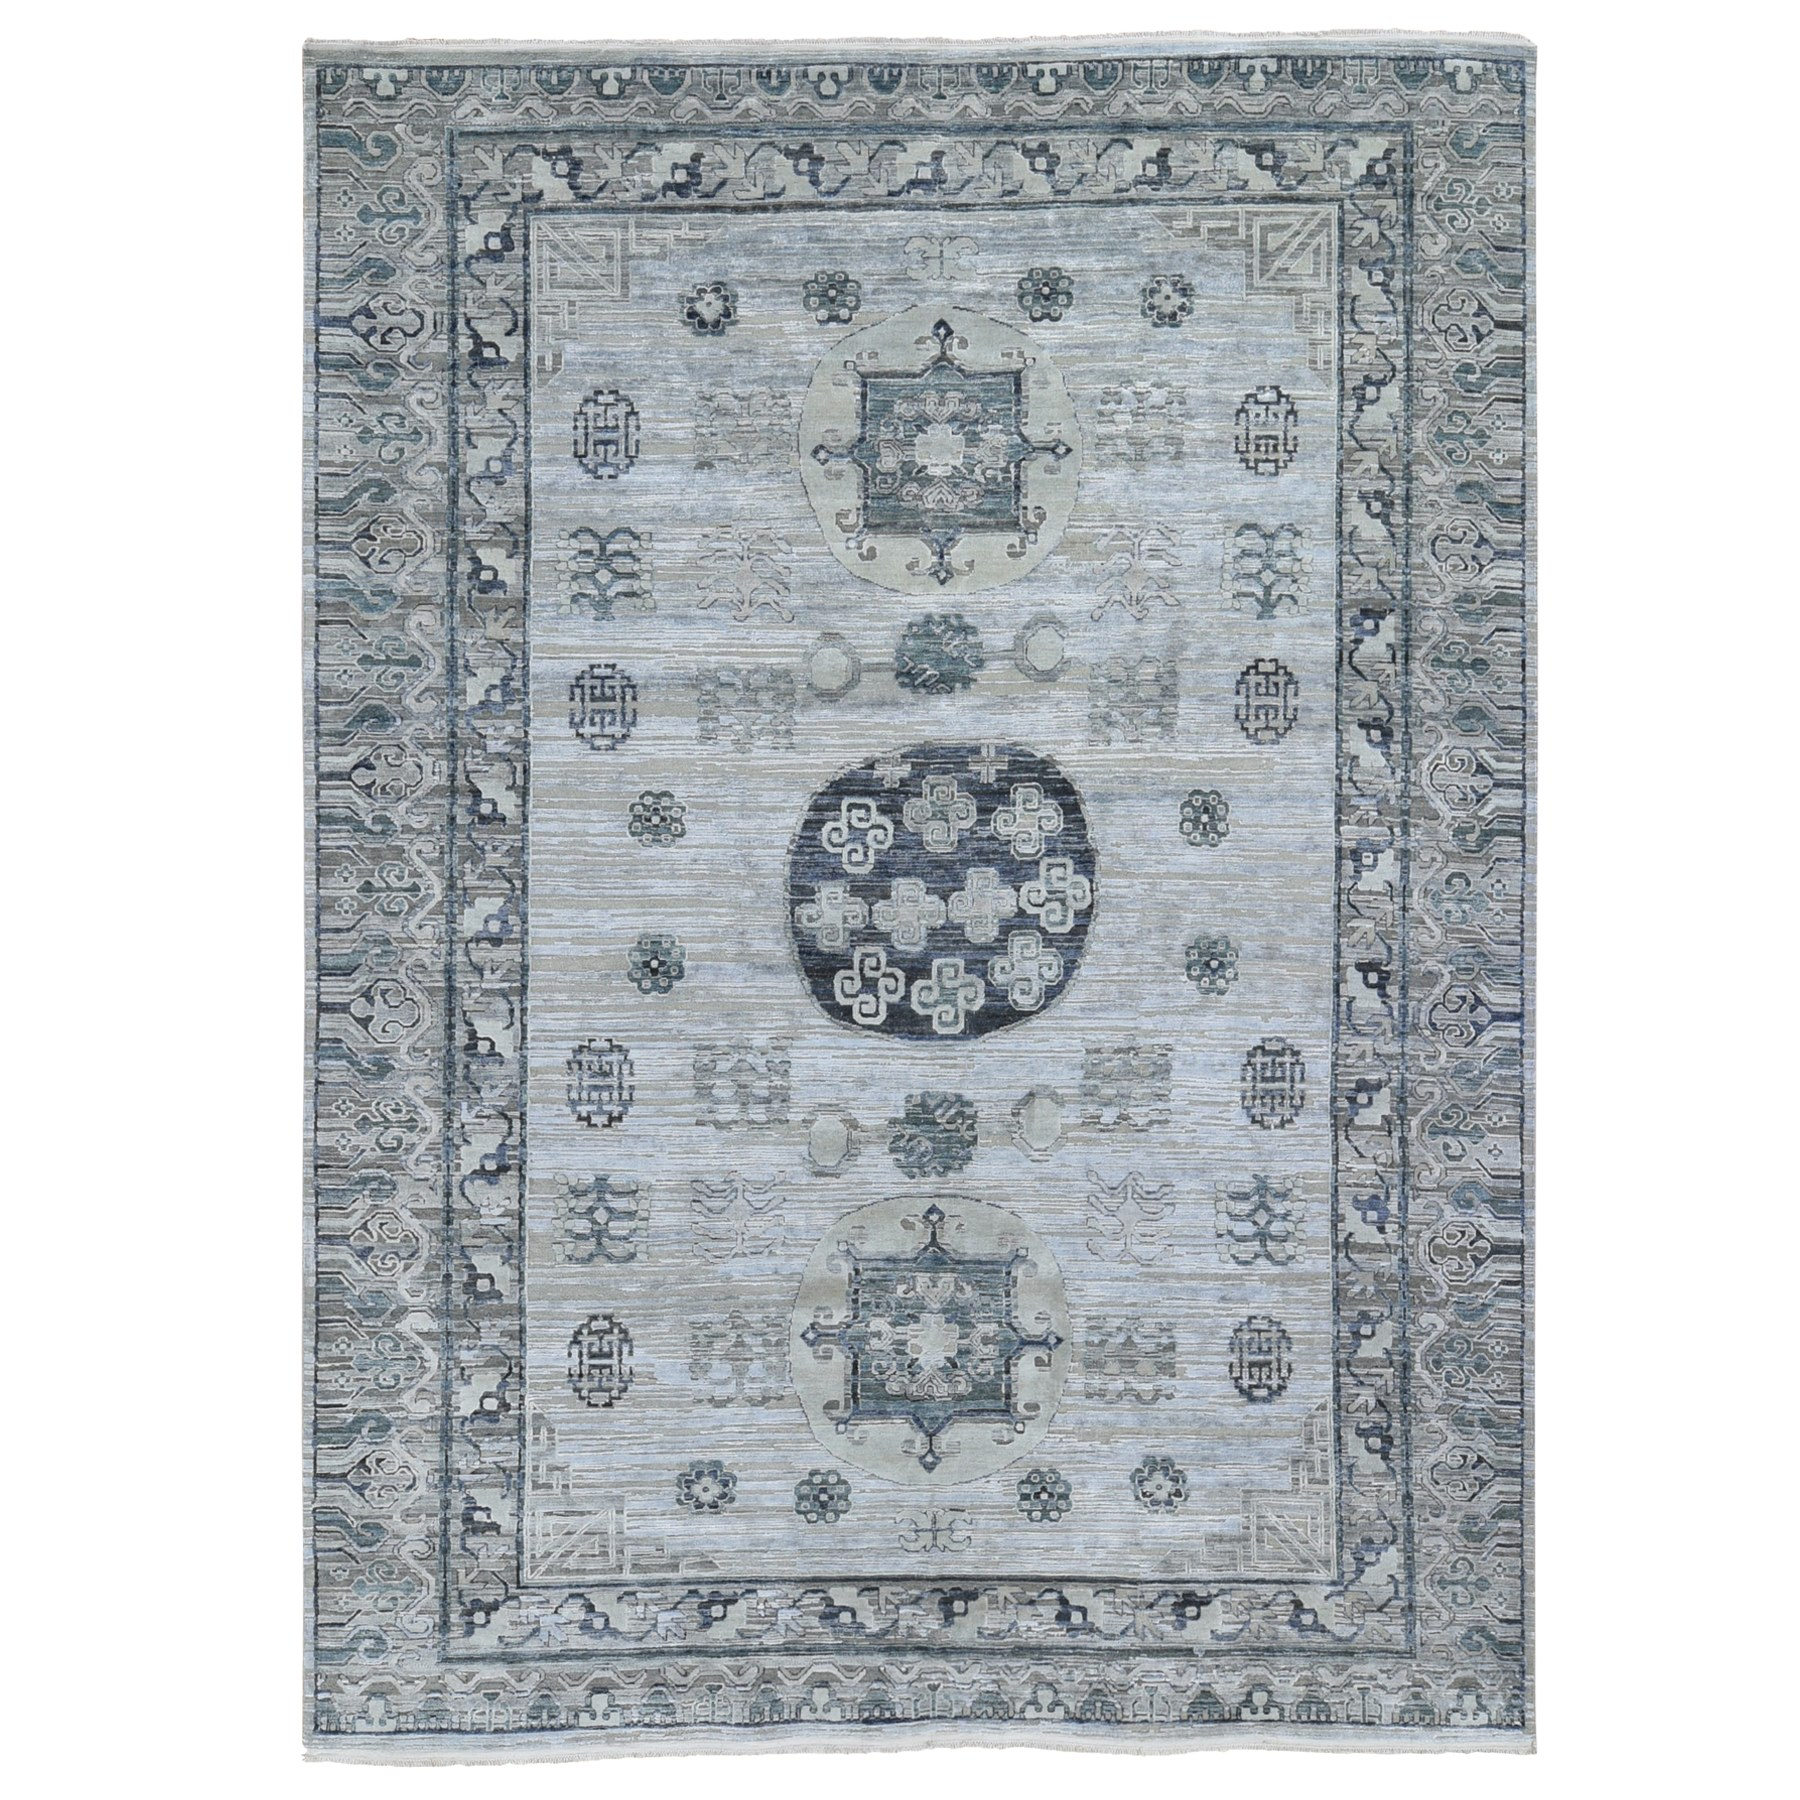 Wool and Real Silk Collection Hand Knotted Grey Rug No: 1118740